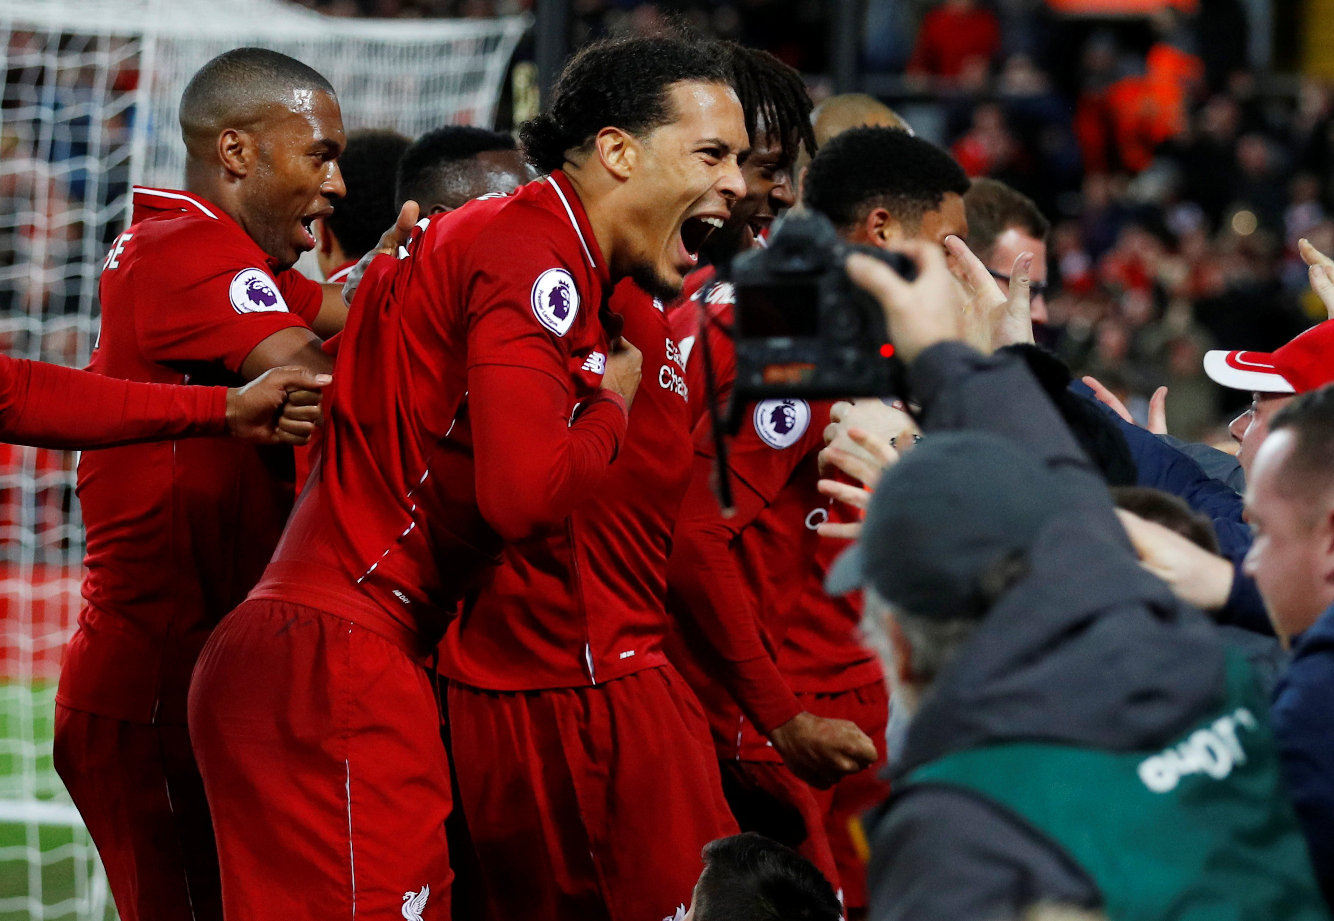 Soccer Football - Premier League - Liverpool v Everton - Anfield, Liverpool, Britain - December 2, 2018  Liverpool's Divock Origi celebrates scoring their first goal with Virgil van Dijk and team mates  REUTERS/Phil Noble  EDITORIAL USE ONLY. No use with unauthorized audio, video, data, fixture lists, club/league logos or